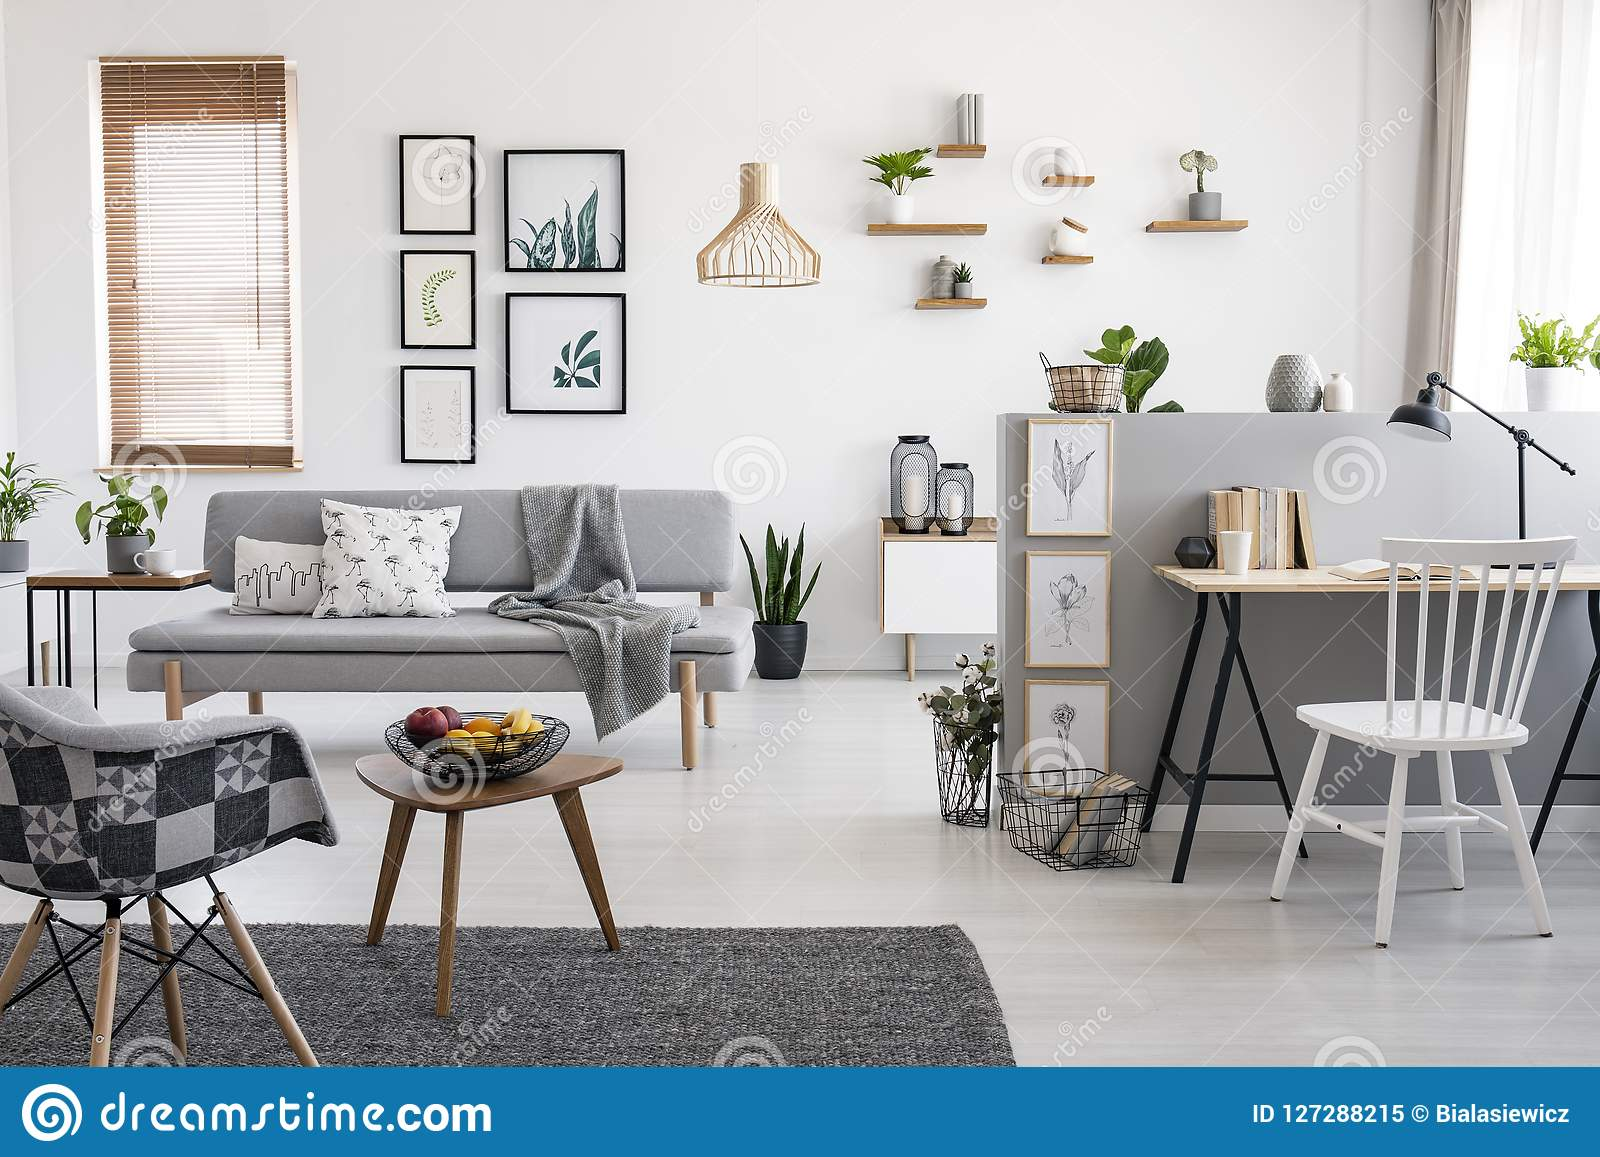 White Chair At Desk In Spacious Apartment Interior With Gallery